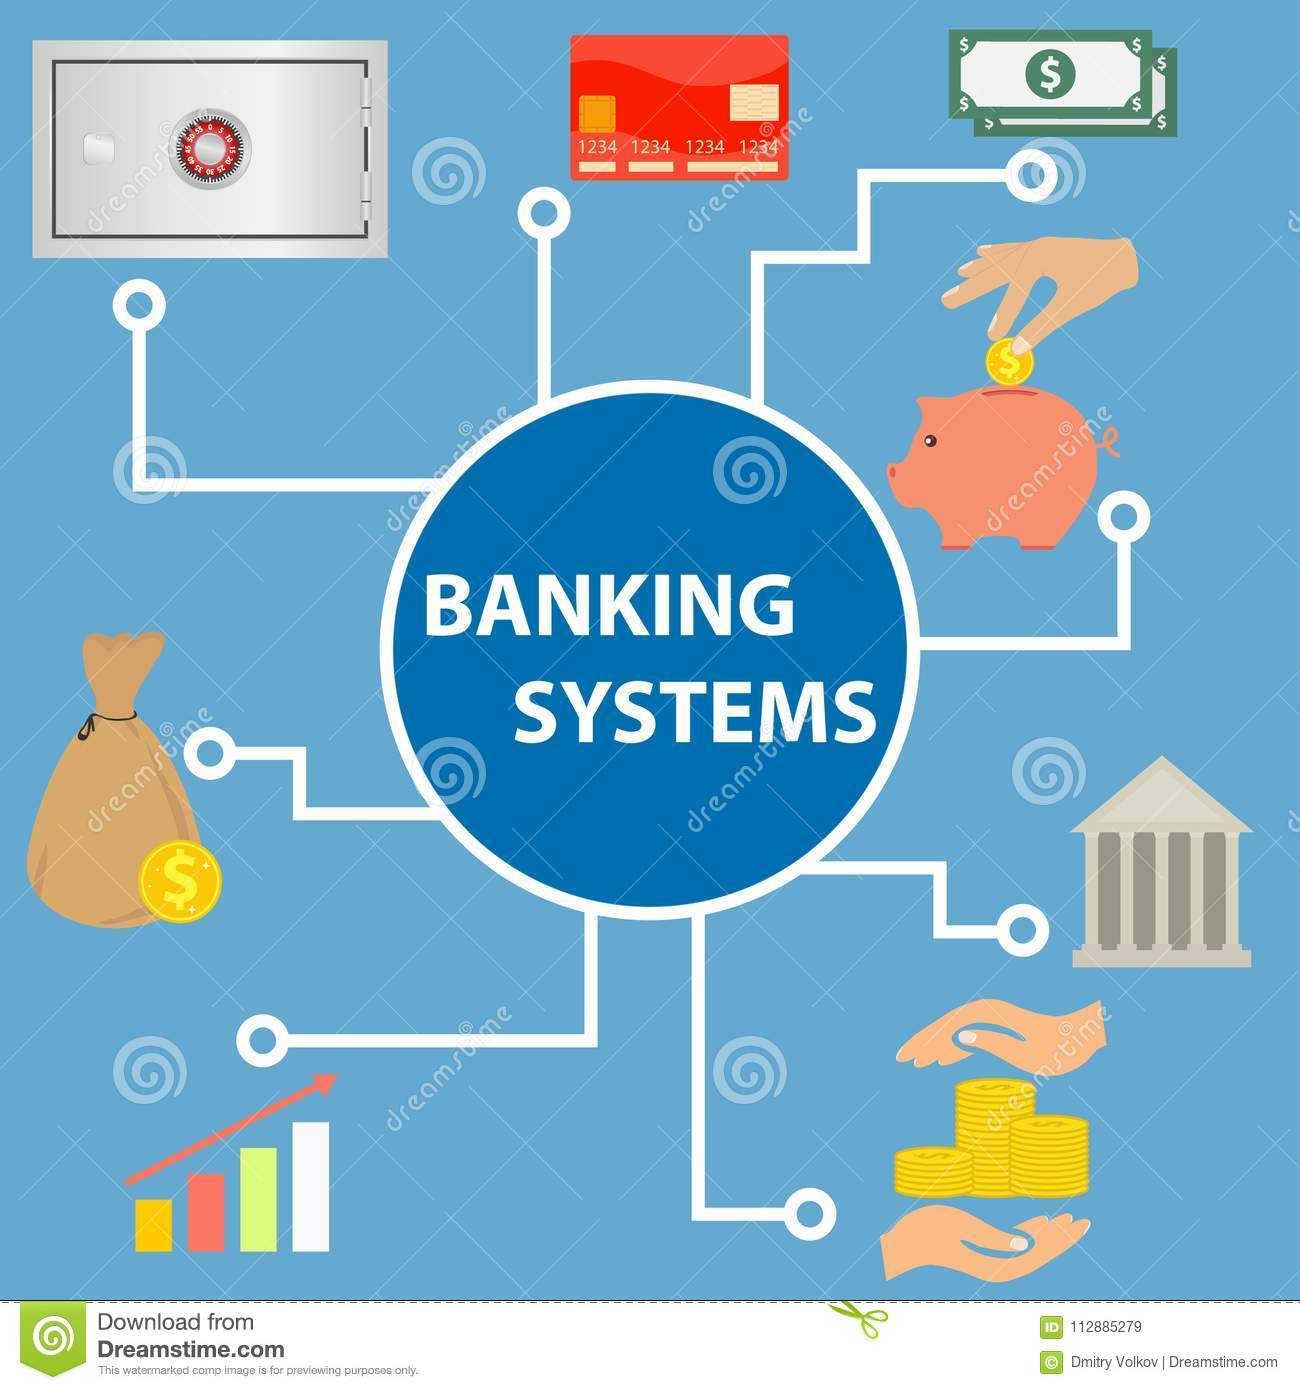 Banking System, The Concept Of The Bank. Stock Illustration - Illustration  of financial, design: 112885279